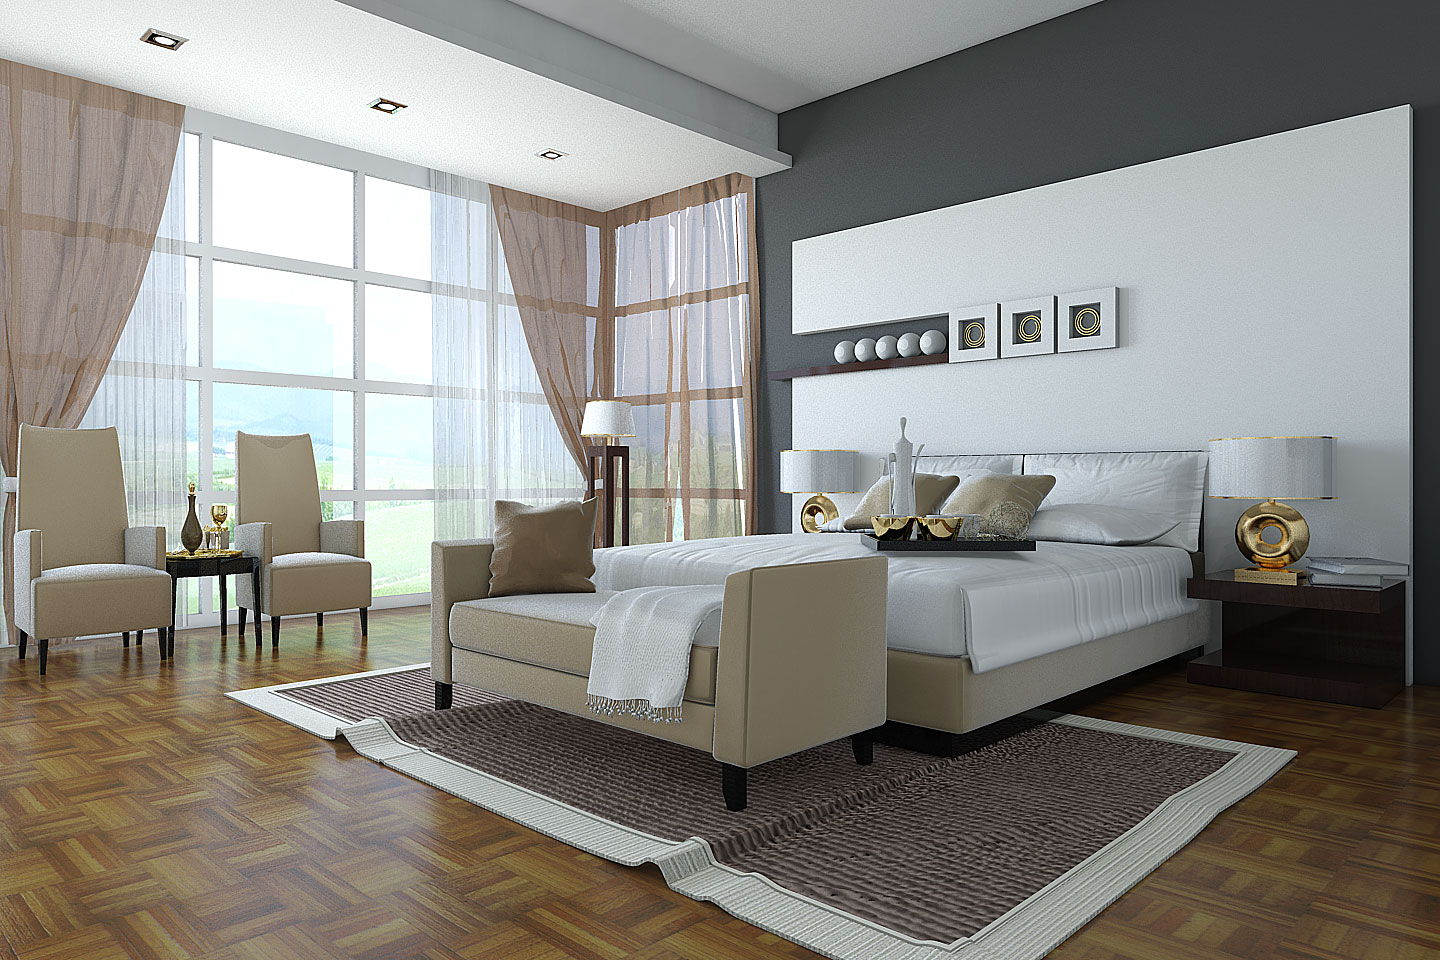 Redesigning The Bedroom With a Personal Theme on Room Decir  id=73620